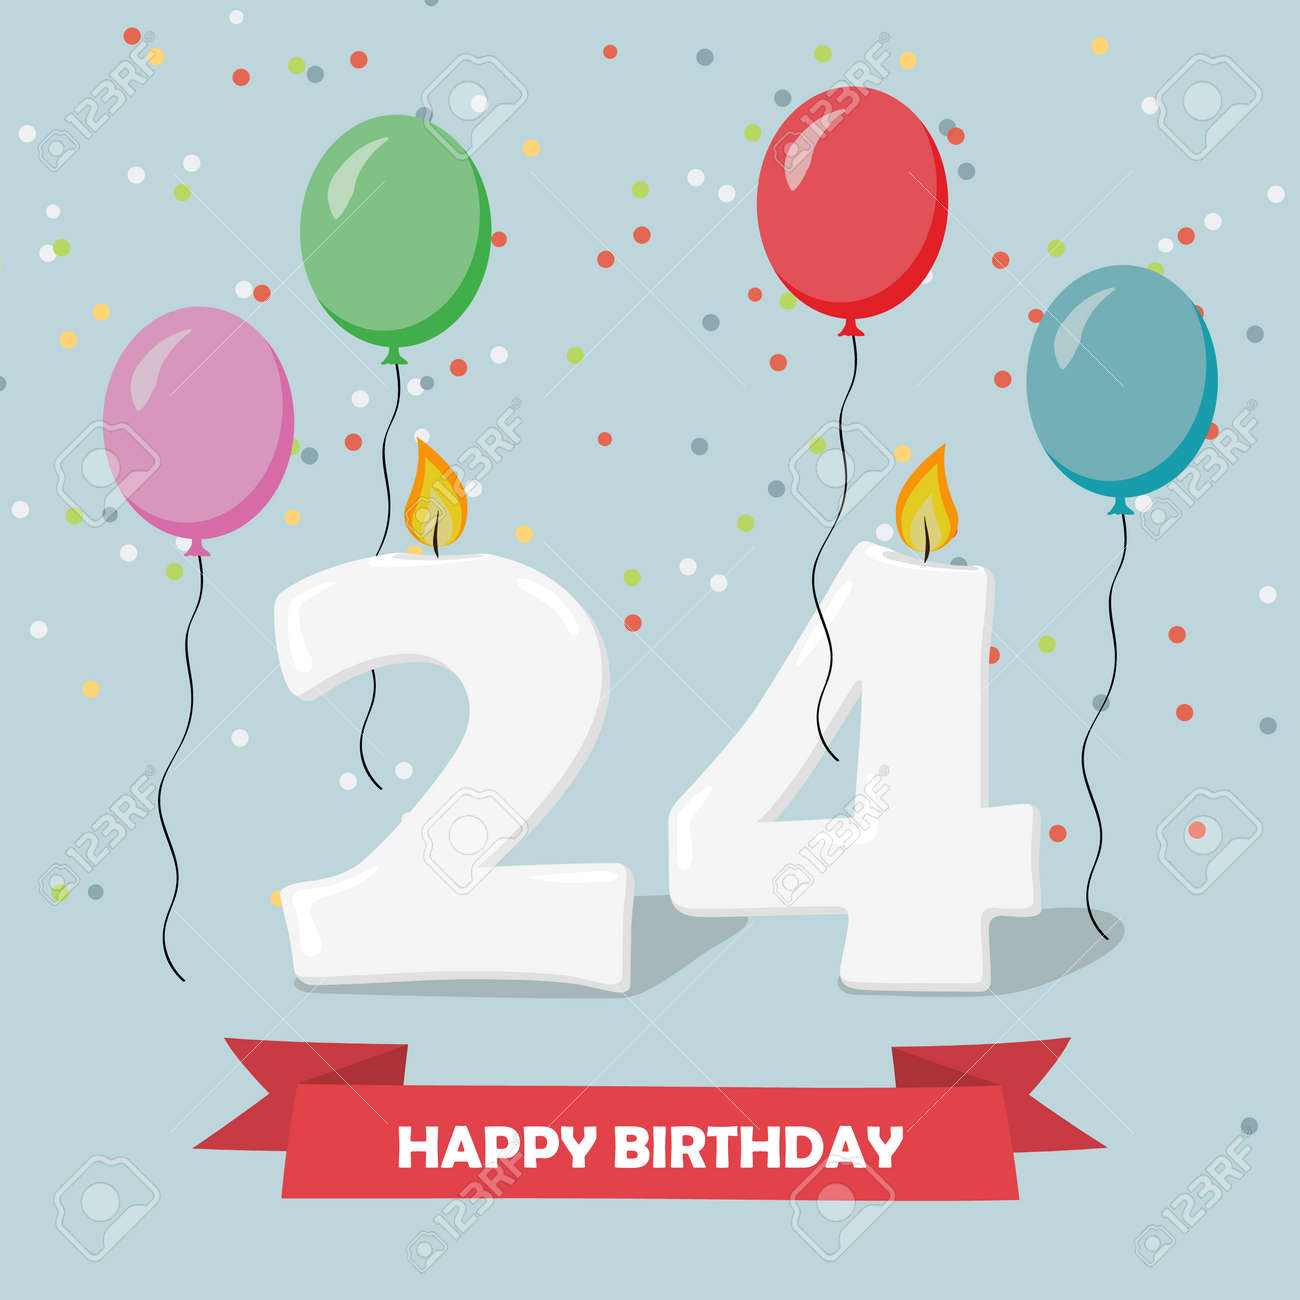 24 Years Celebration Happy Birthday Greeting Card With Candles Royalty Free Cliparts Vectors And Stock Illustration Image 94134868